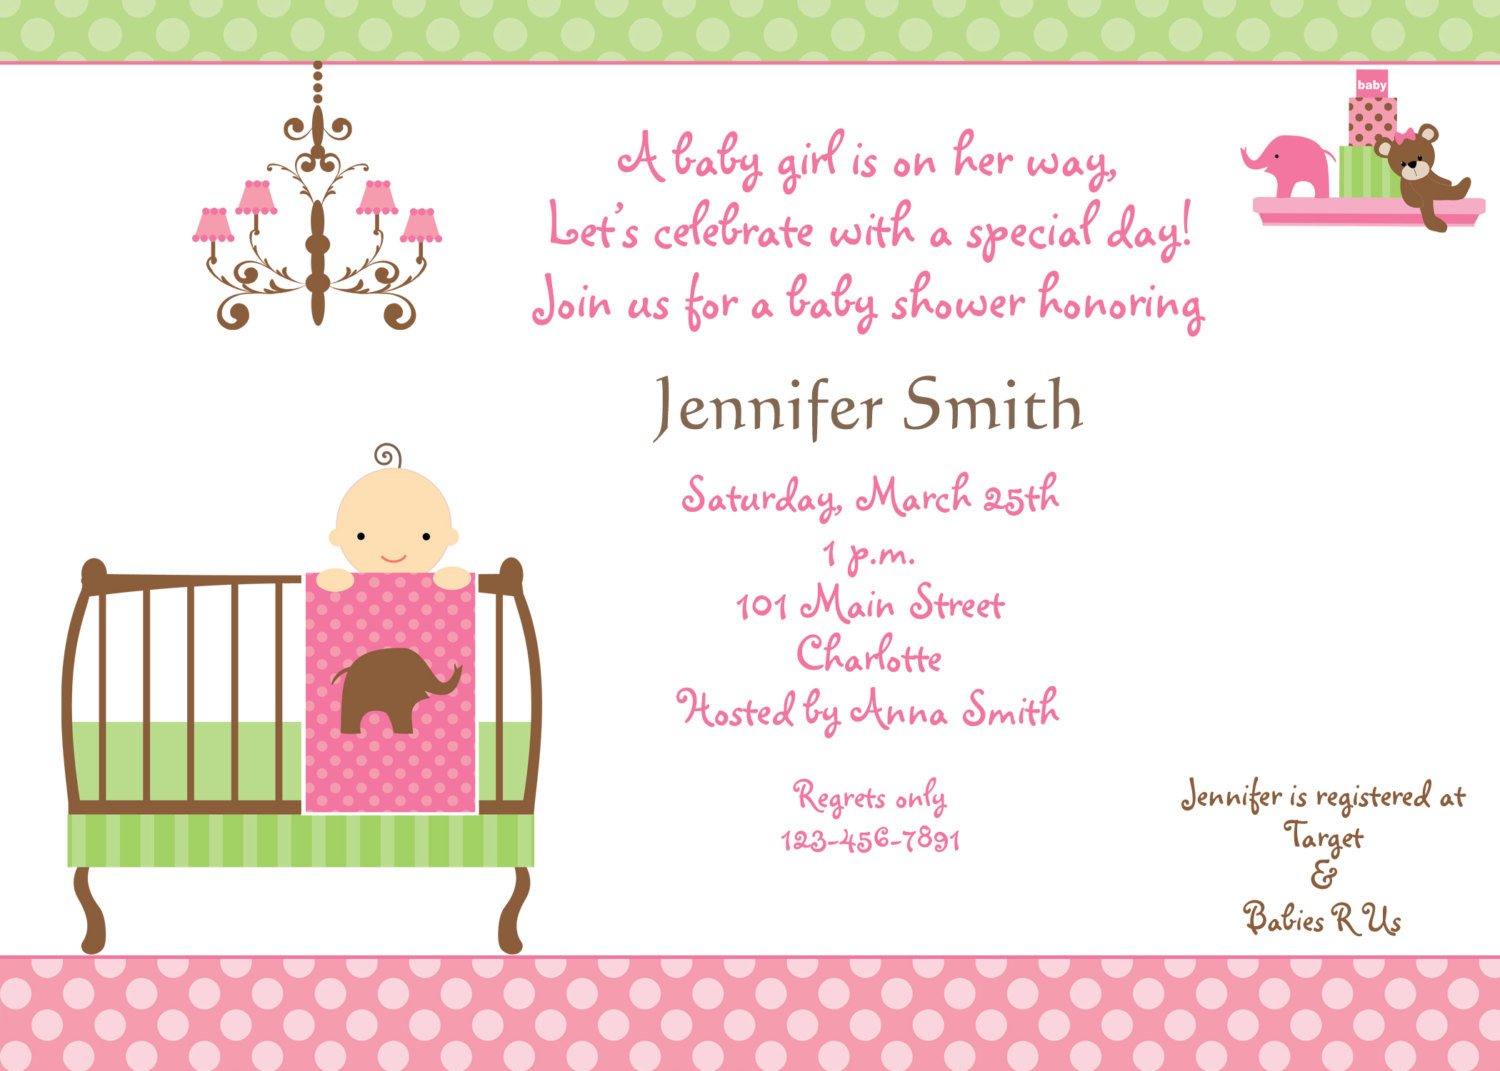 Full Size of Baby Shower:63+ Delightful Cheap Baby Shower Invitations Image Inspirations Cheap Baby Shower Invitations Personalized Baby Shower Baby Shower Ideas For Boys Baby Shower Boy Baby Shower Wreath Comida Para Baby Shower Baby Shower Invitations Extraordinary Baby Shower Invitations To Make Baby Shower Invites Hi